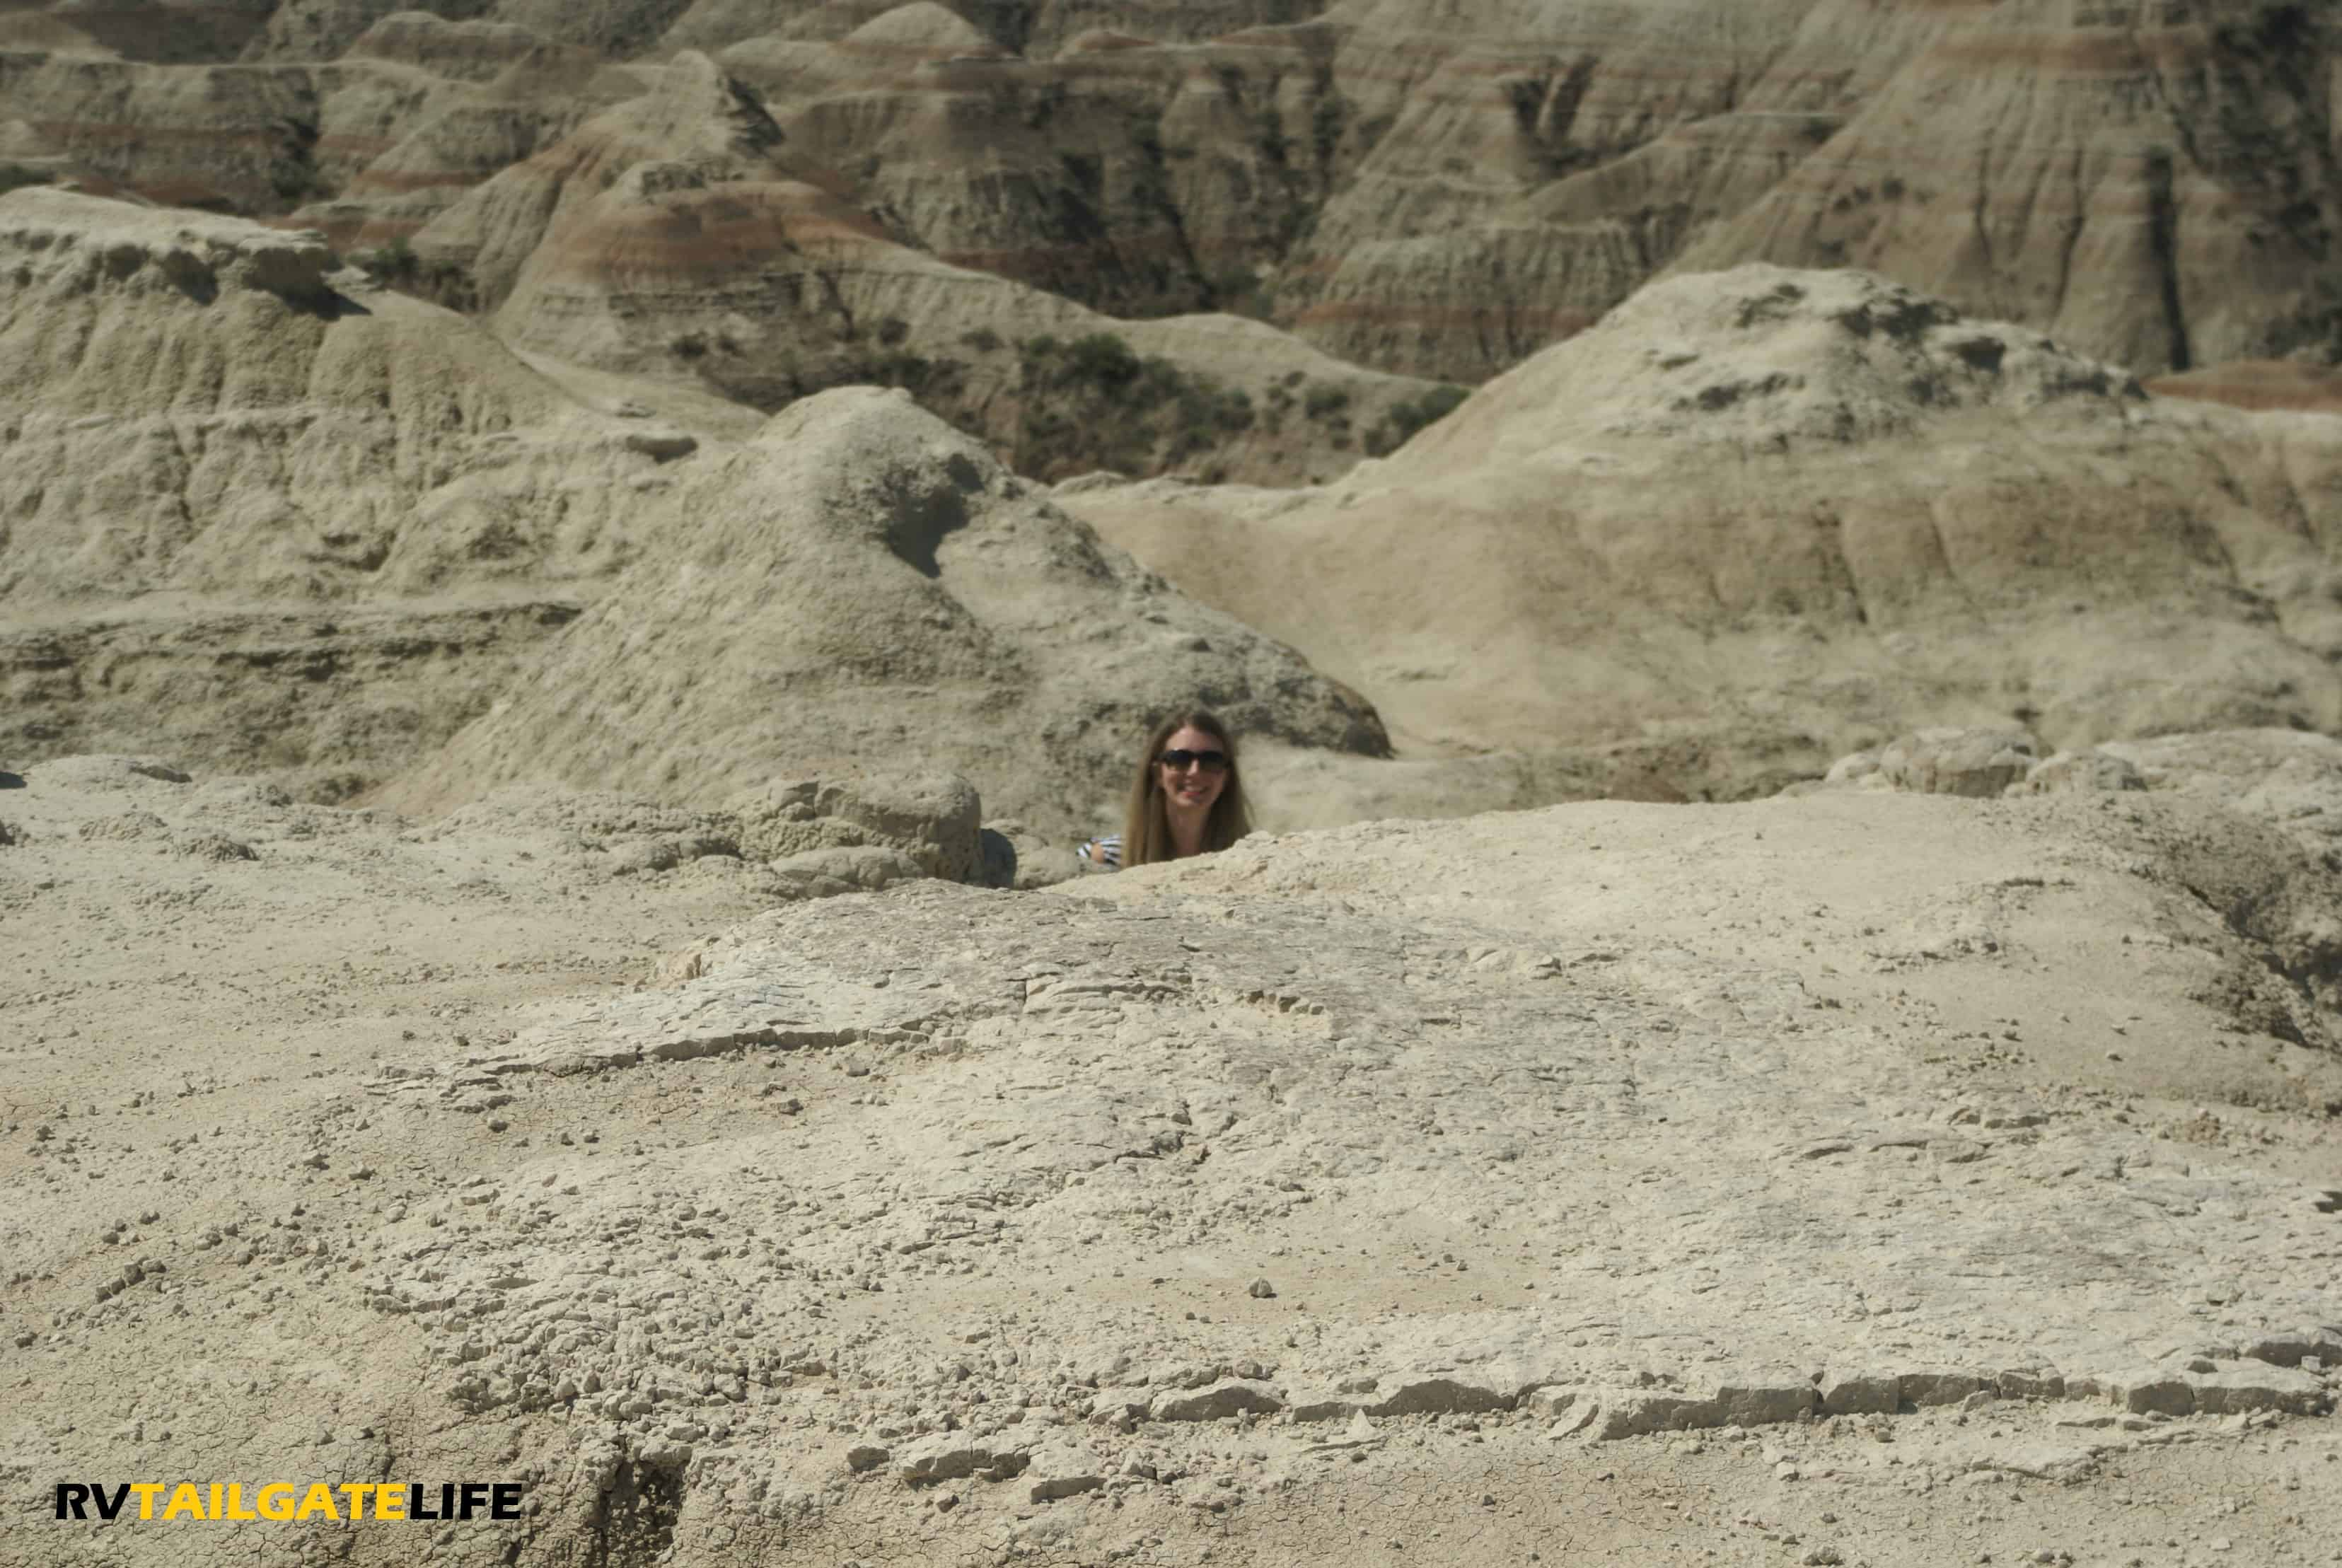 Heather pops up over some rock formations in the Badlands National Park.